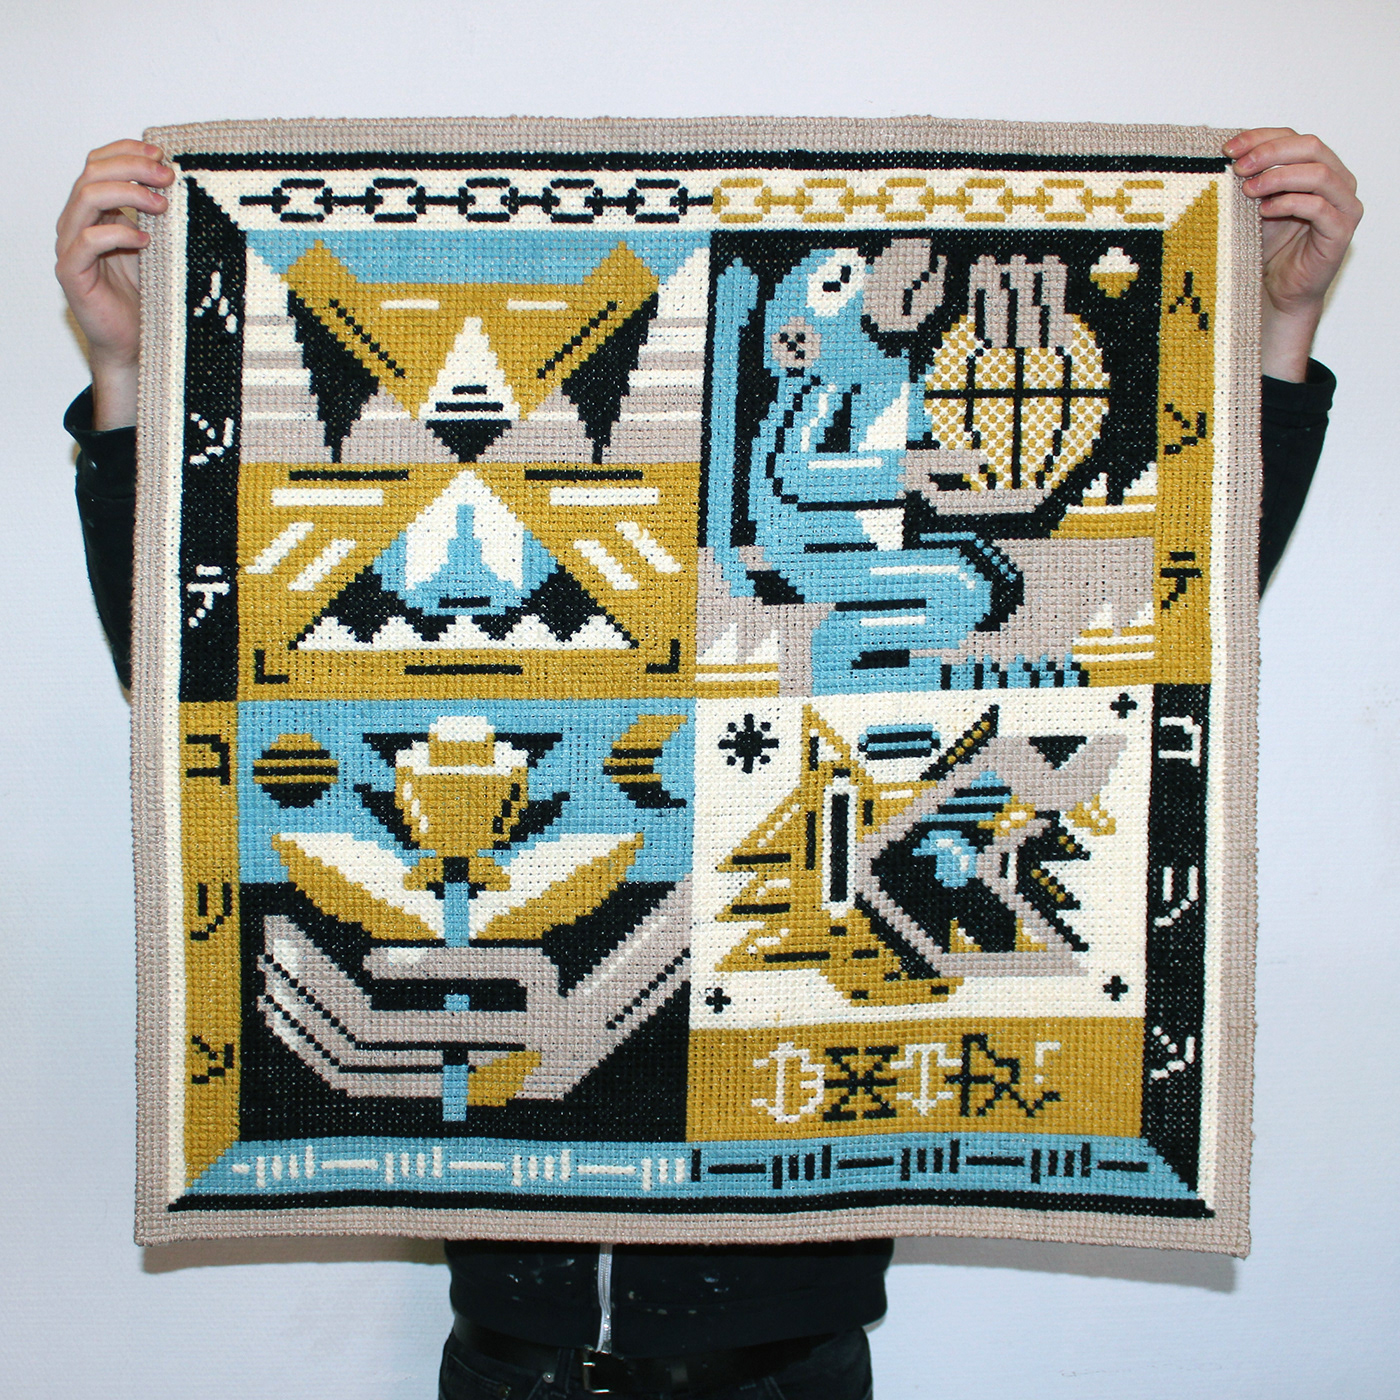 dxtr pictoplasma Exhibition  tapestry Rug canvas acrylics berlin characterdesign wool